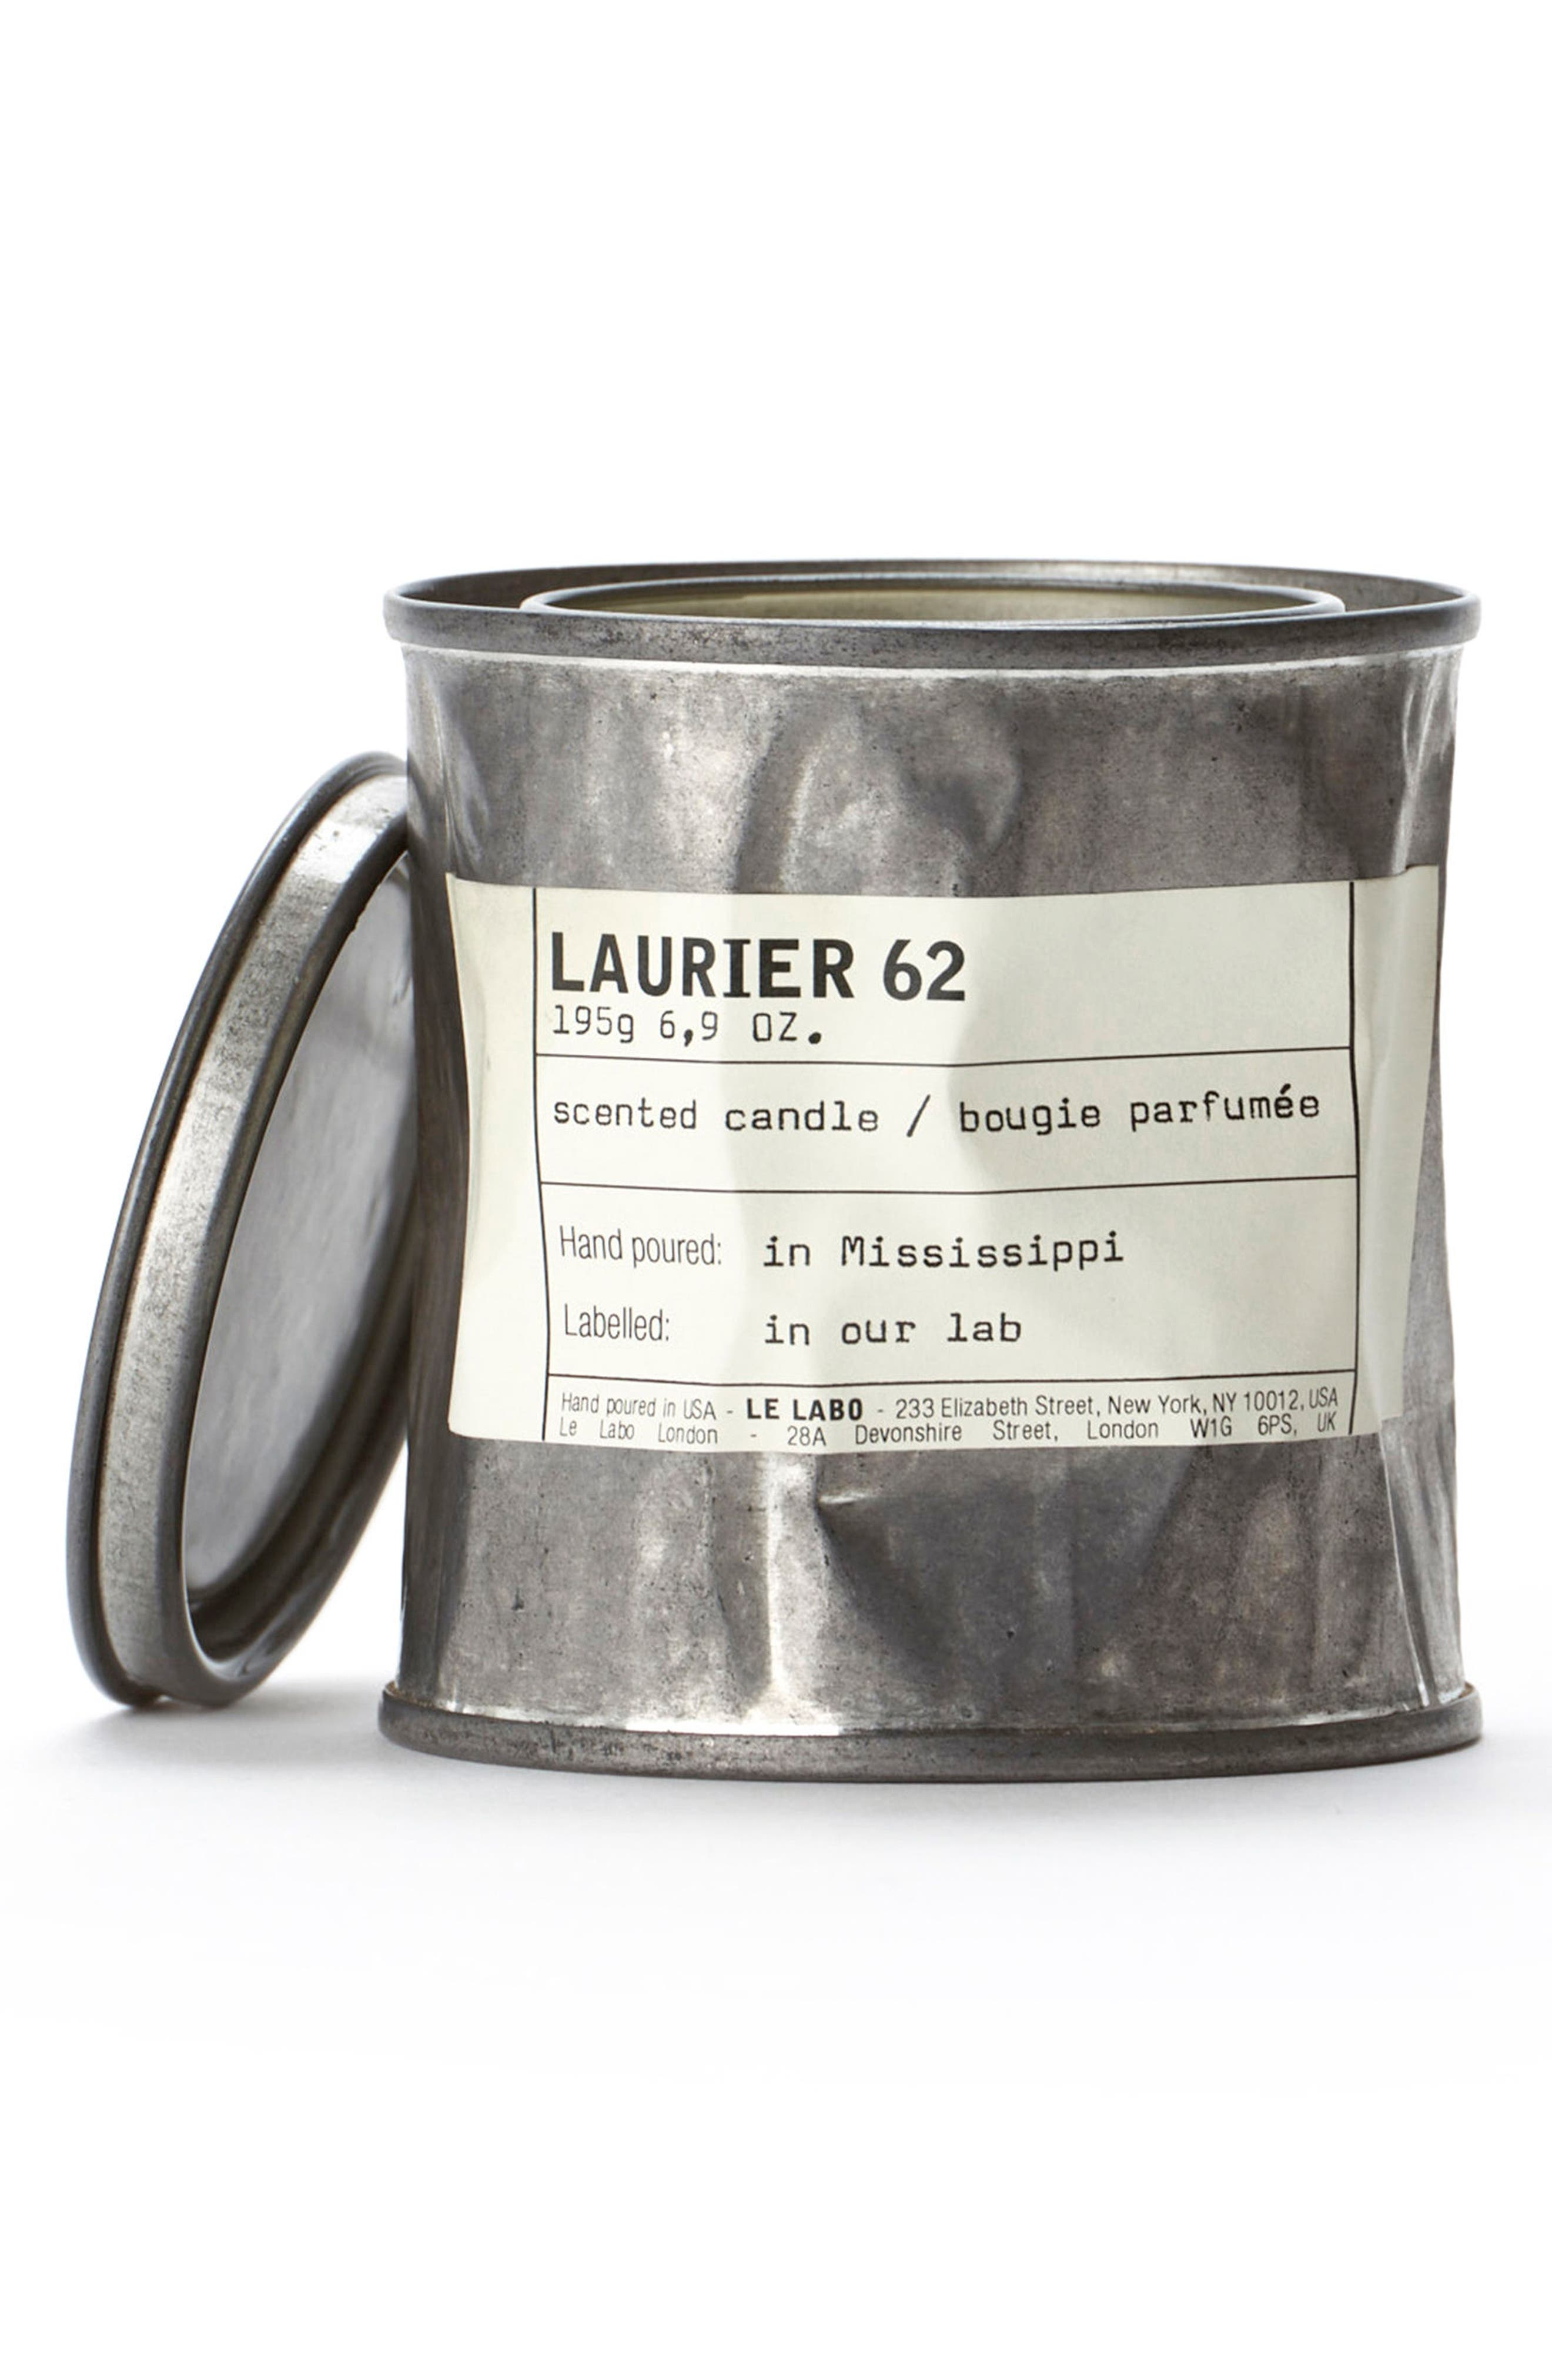 Alternate Image 1 Selected - Le Labo 'Laurier 62' Vintage Candle Tin